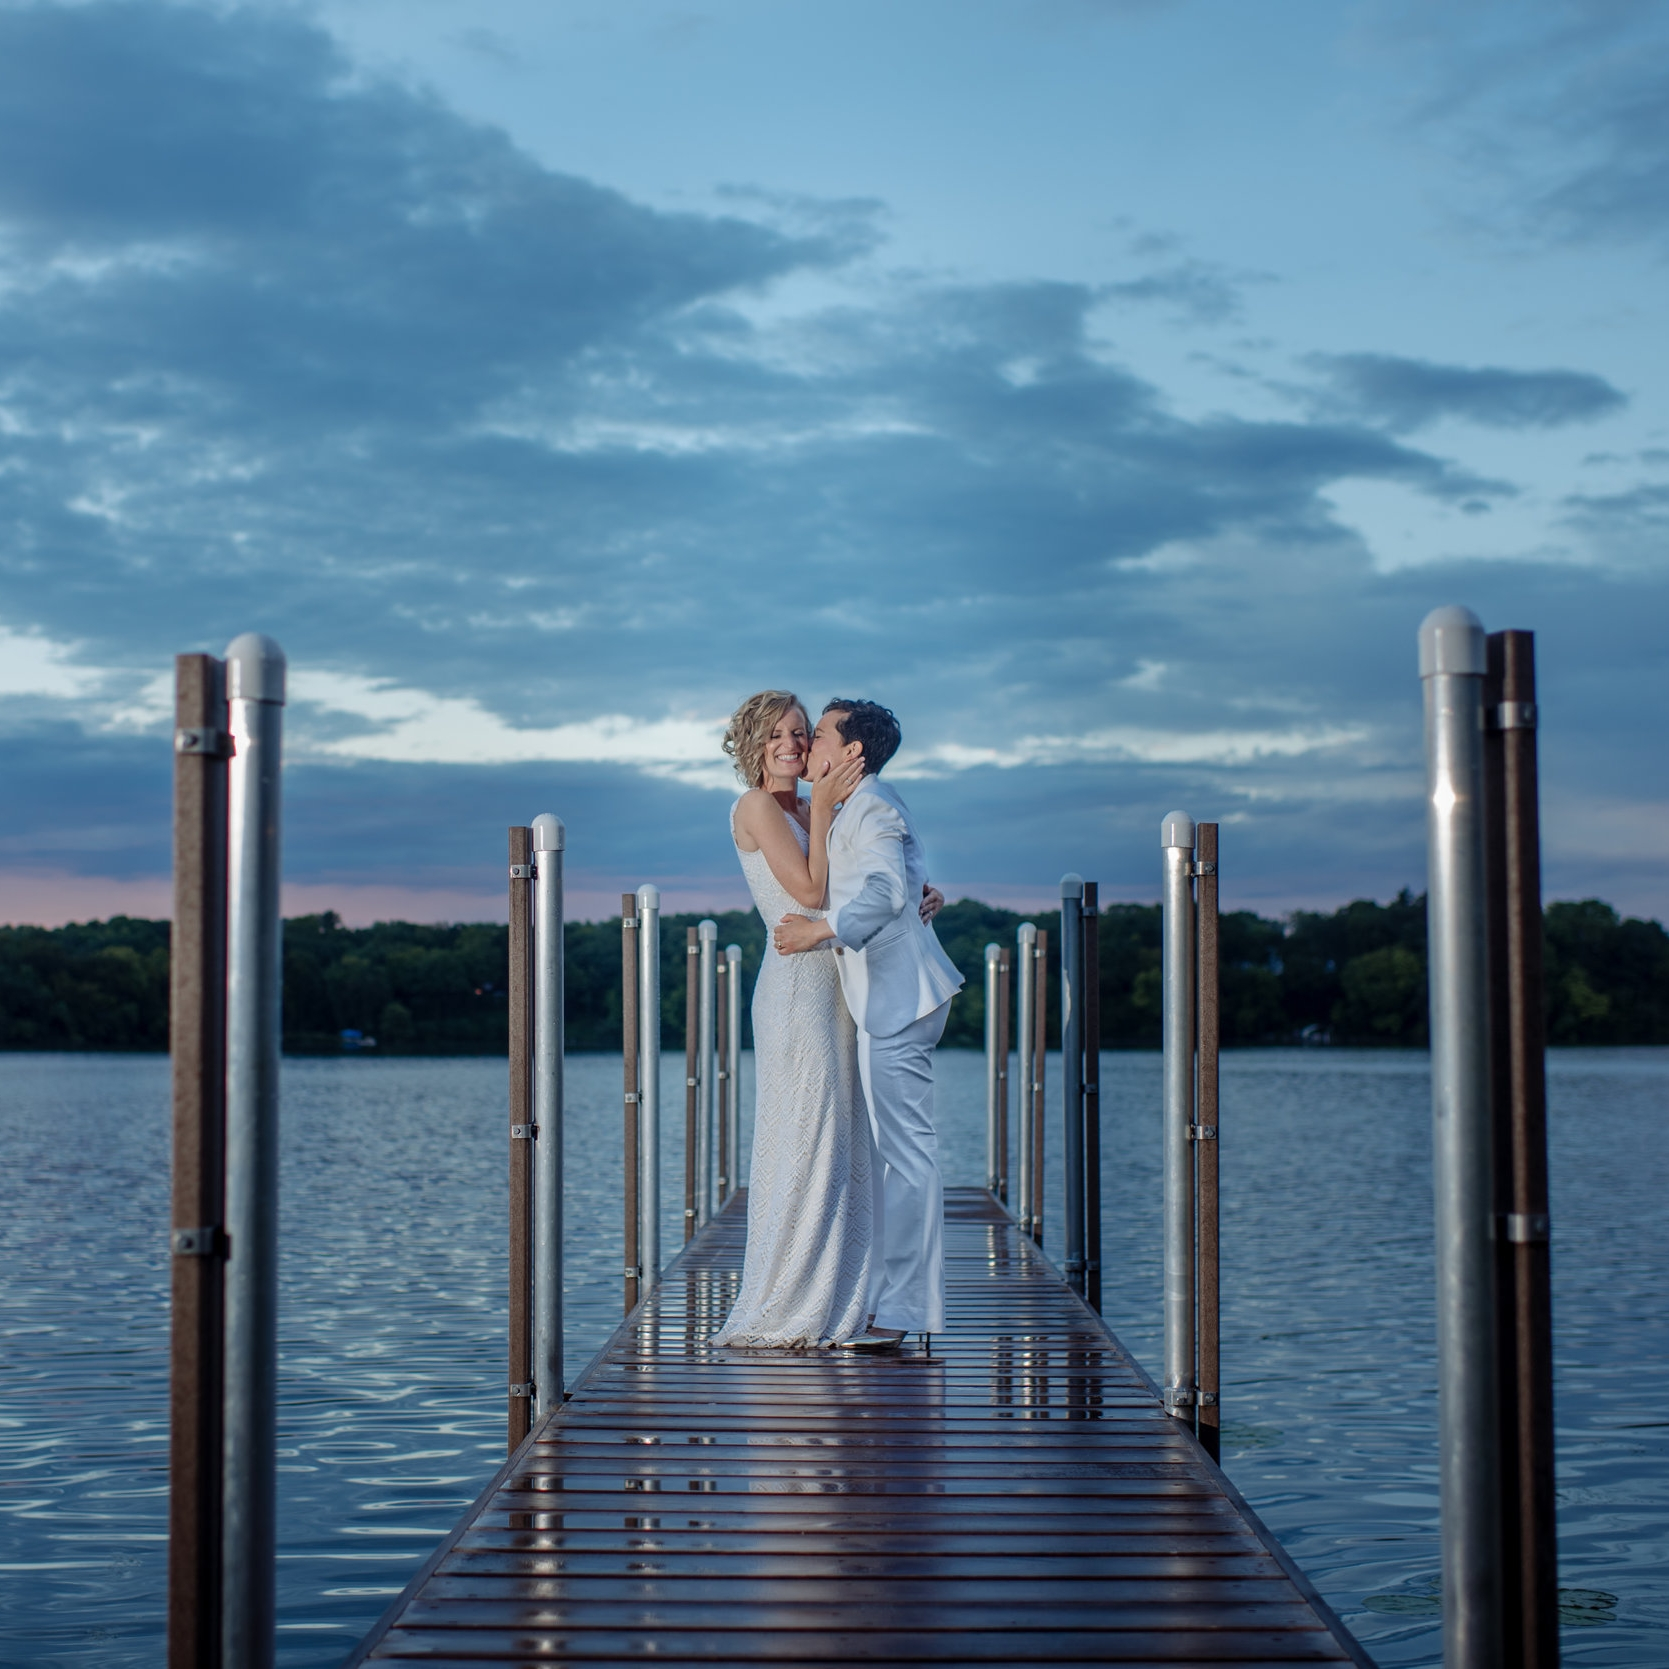 intimate lakeside wedding ceremony for same-sex couple by sincerely pete events